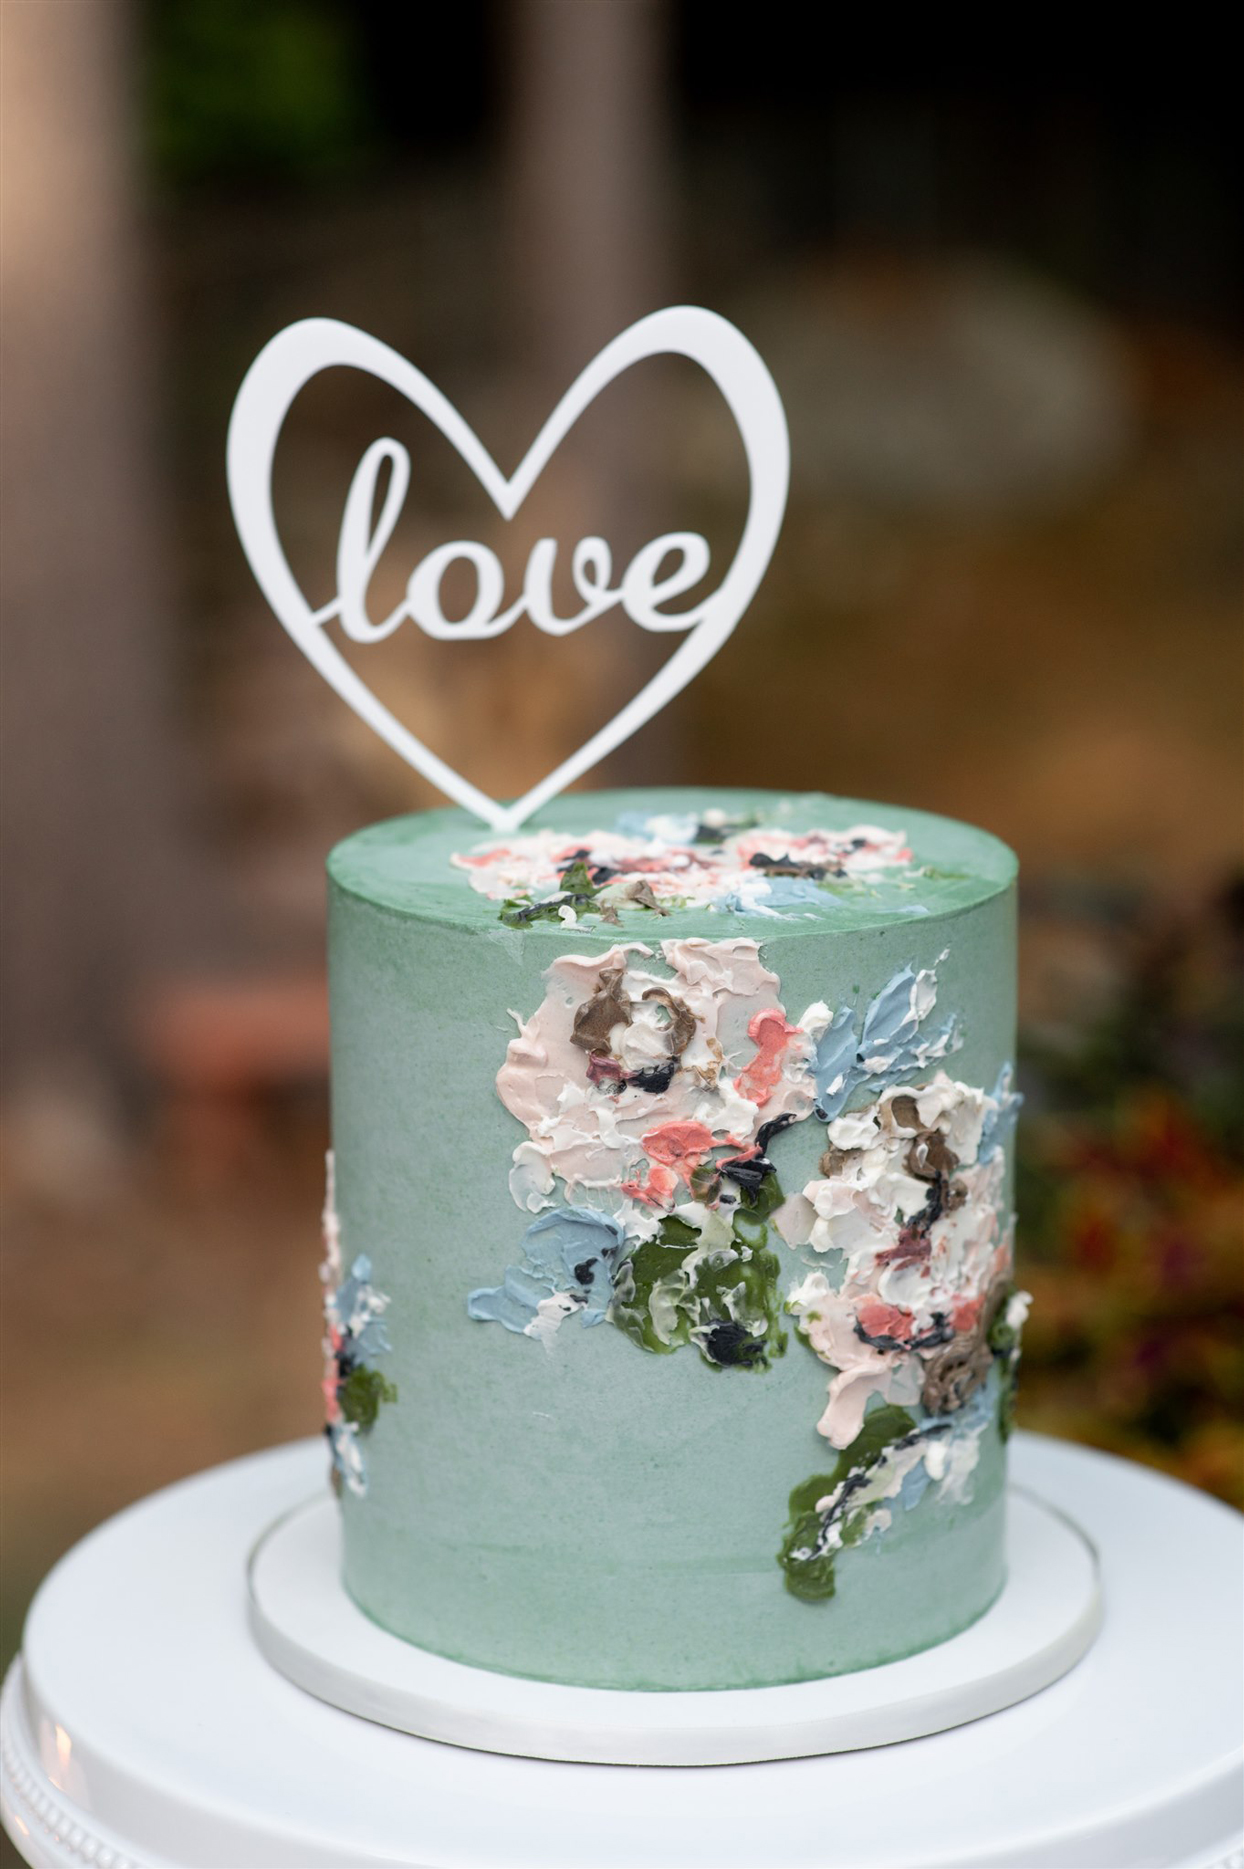 """Teal-colored wedding cake with """"love"""" topper"""